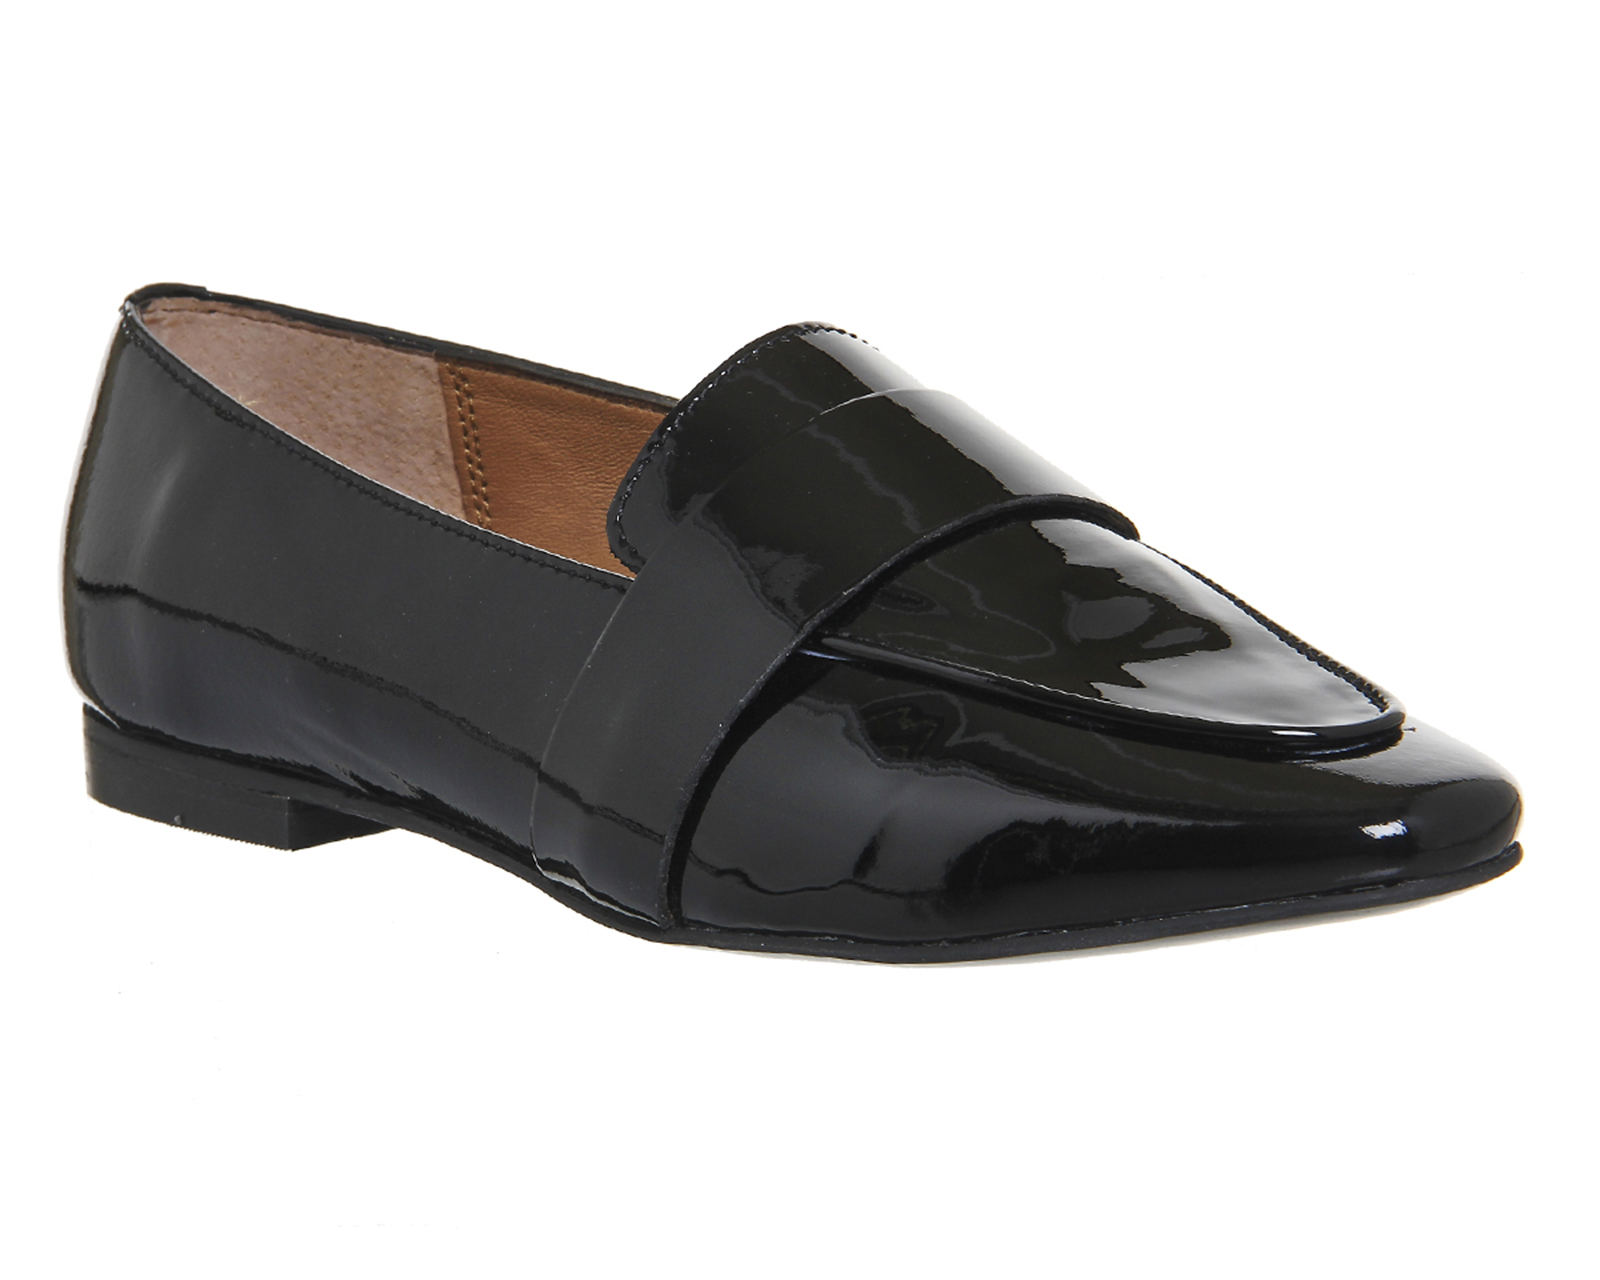 Loafer Women's Black Leaf Alegria Vienna Search Custom Search Loafer Women's Leaf Black Alegria Vienna. Alegria Loafer Vienna Black Leaf Women's. Caterpillar Bungee Waterproof Men's Cord Boot Elude Chukka rxPrqXw0nF. Men's Loafer on Laundry .